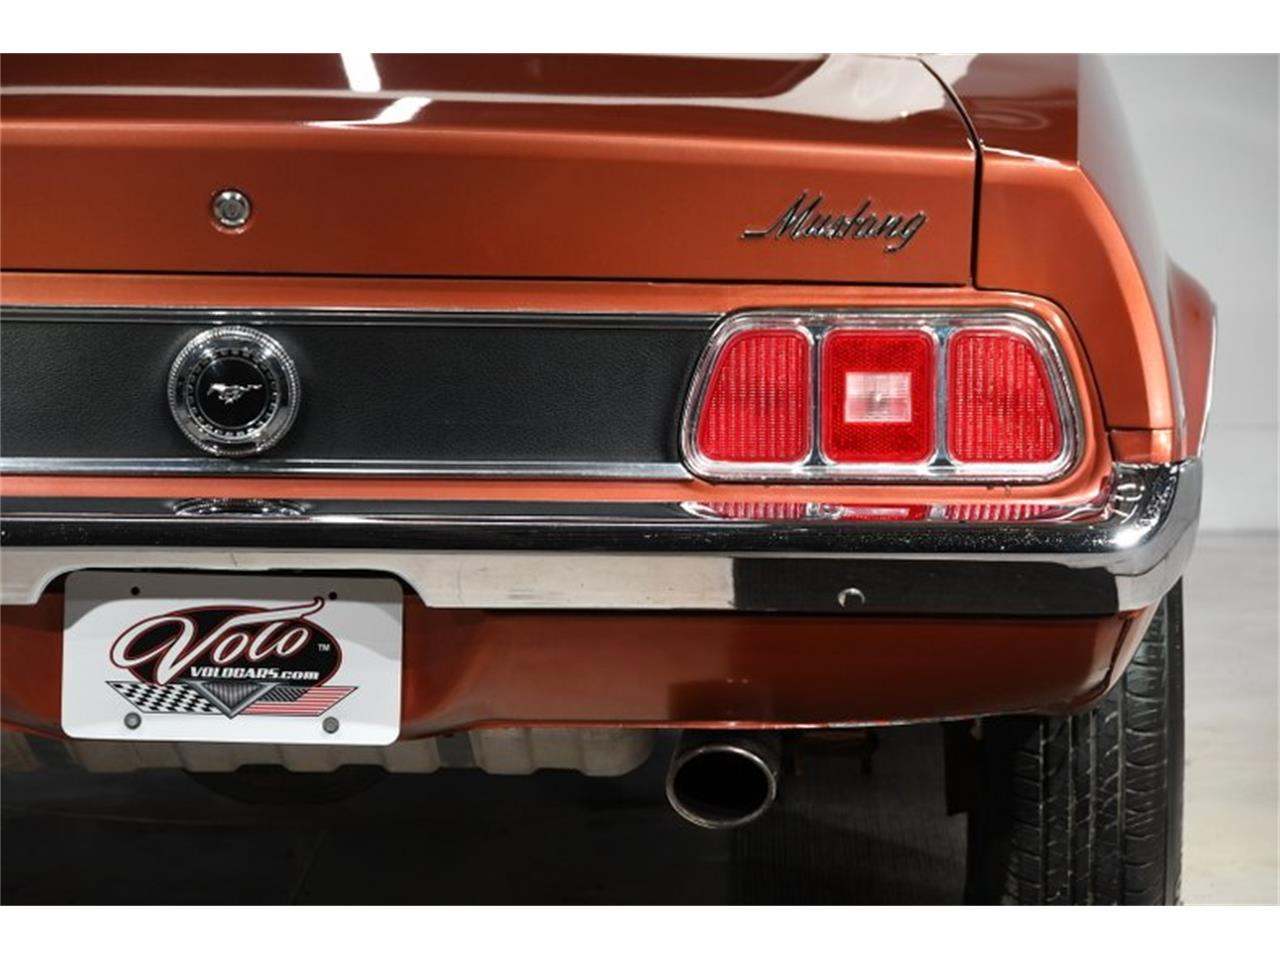 1973 Ford Mustang for sale in Volo, IL – photo 81